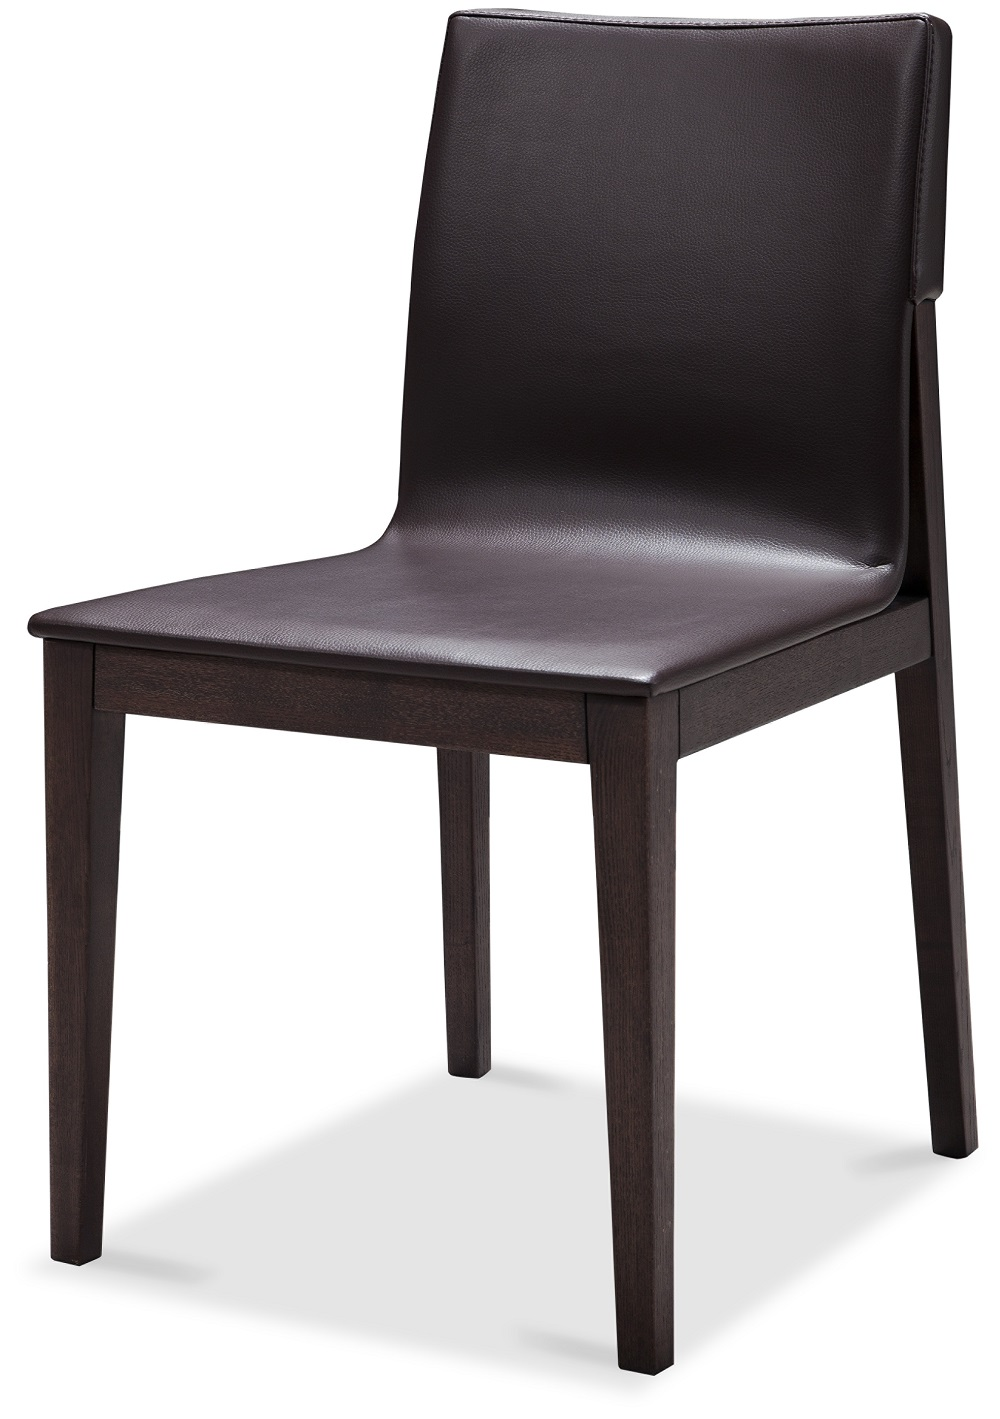 Contemporary brown upholstered dining chair with sturdy for Upholstered dining chairs contemporary